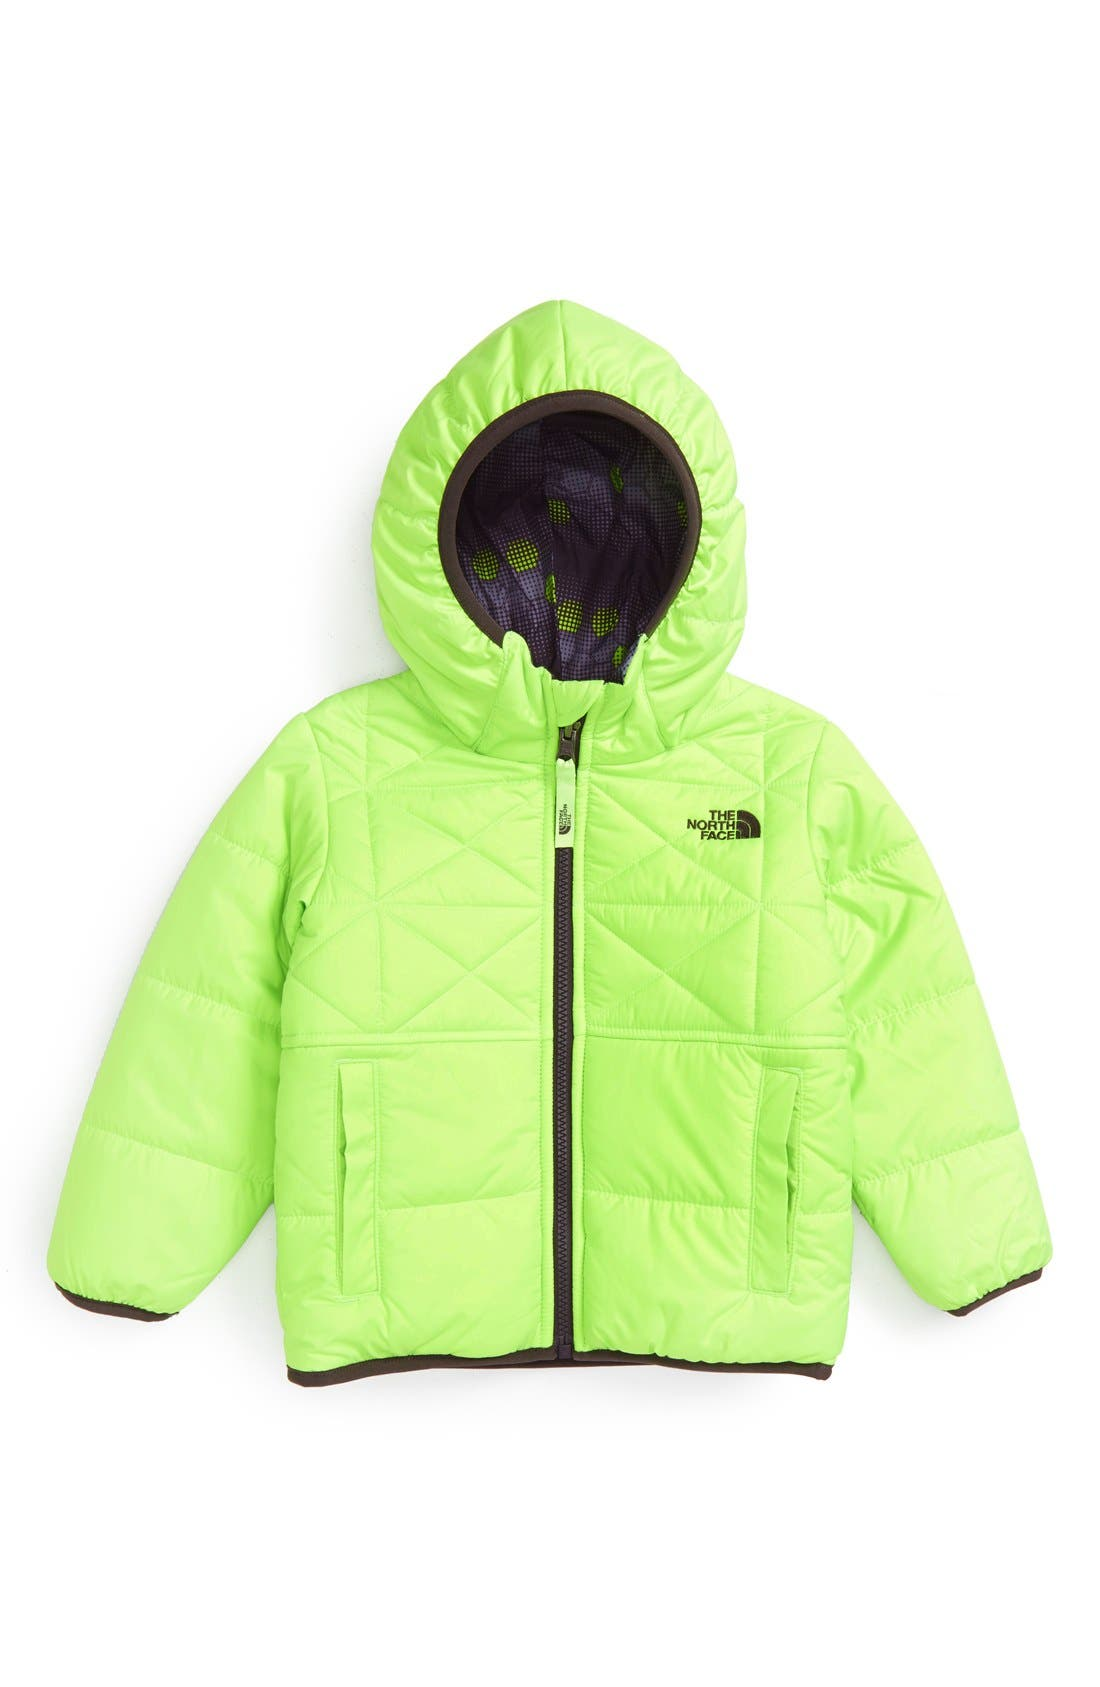 Alternate Image 1 Selected - The North Face 'Perrito' Reversible Water Repellent Heatseeker™ Insulated Jacket (Toddler Boys & Little Boys)